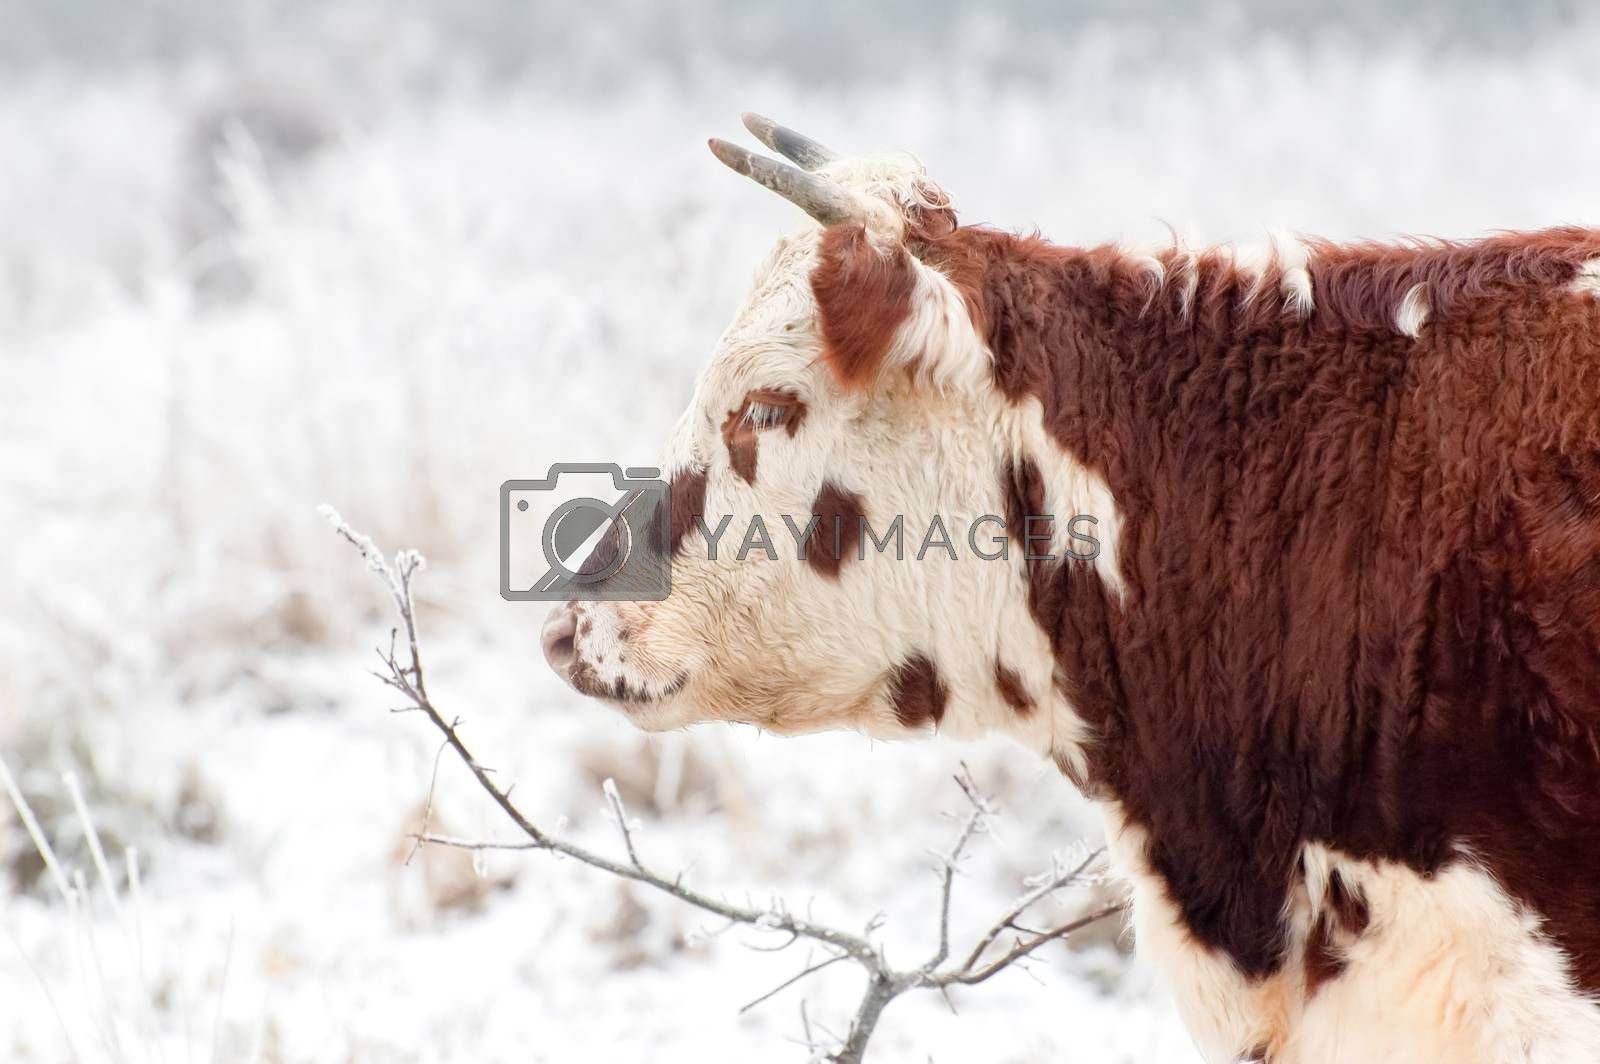 Royalty free image of frozen beef by nelsonart